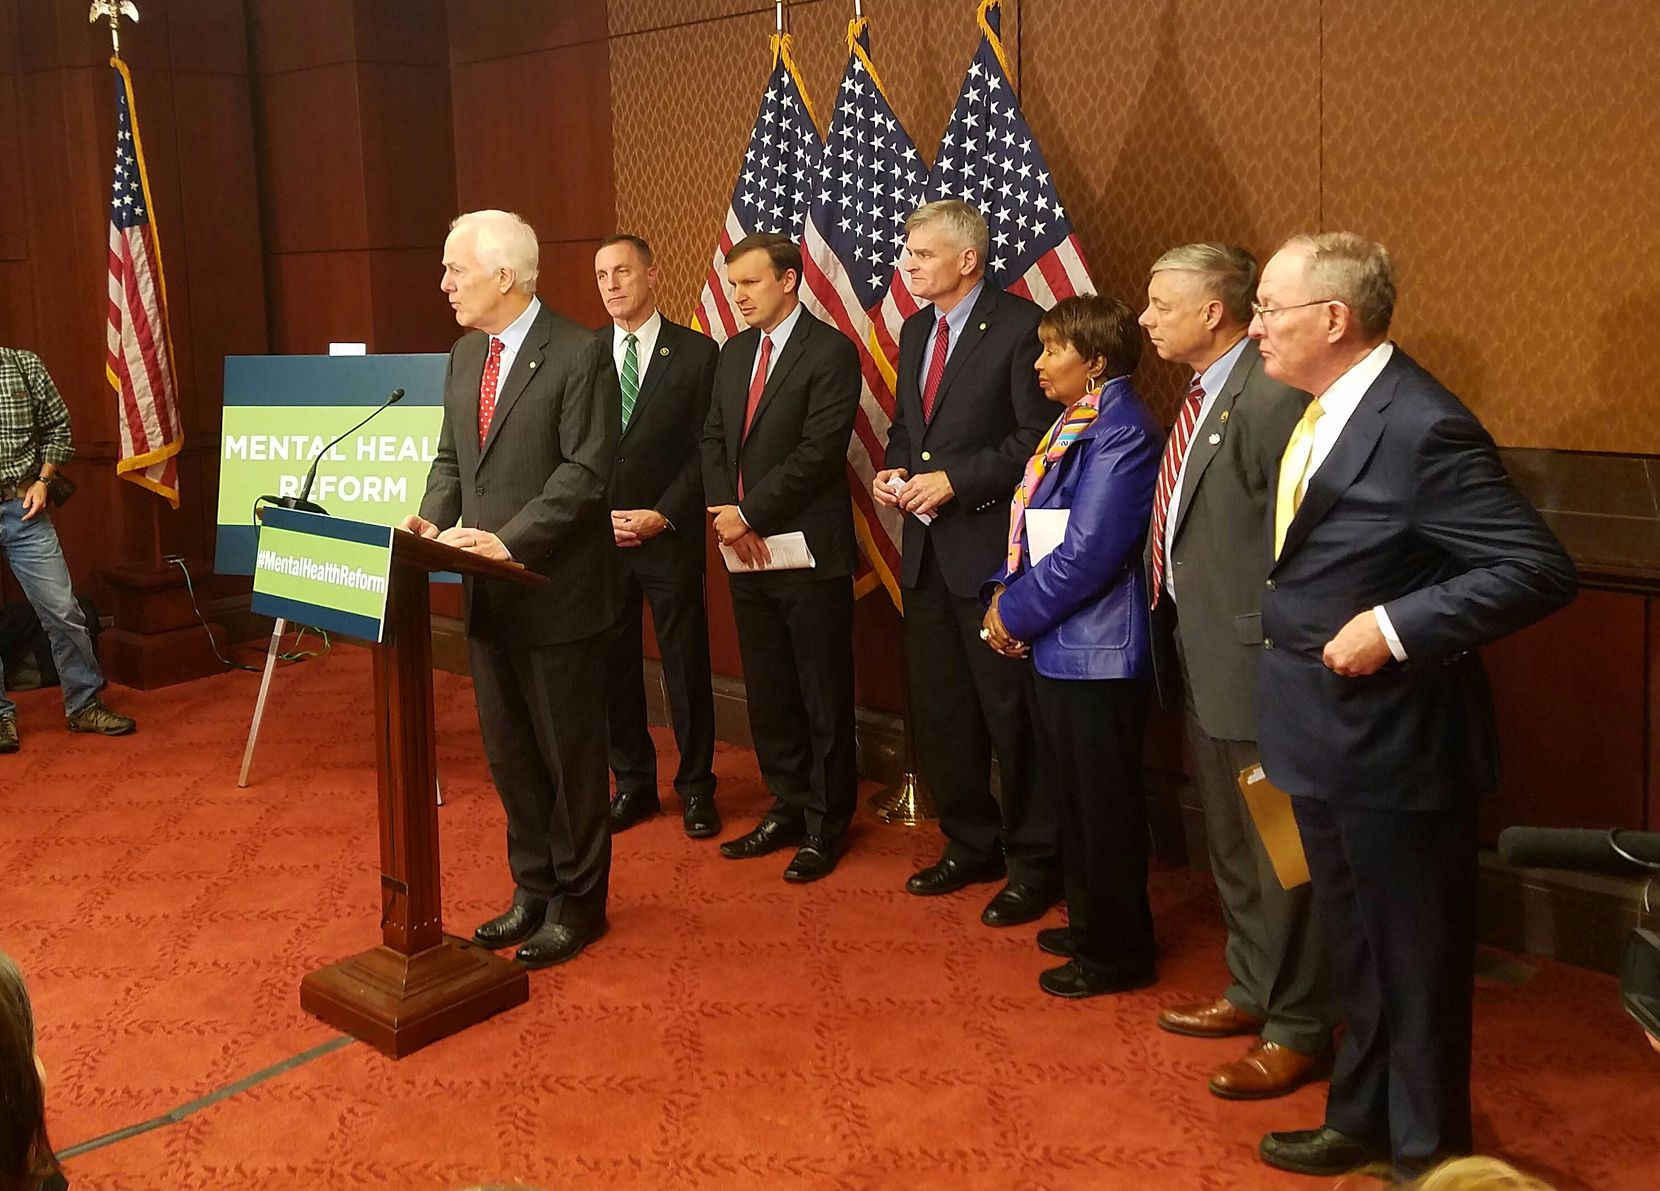 """Texas Sen. John. Cornyn, flanked by Rep. Eddie Bernice Johnson and other lawmakers, cheered the mental health measure as a way to help Americans get the """"sort of treatment they need in order to turn their lives around."""" (Tom Benning/Staff)"""